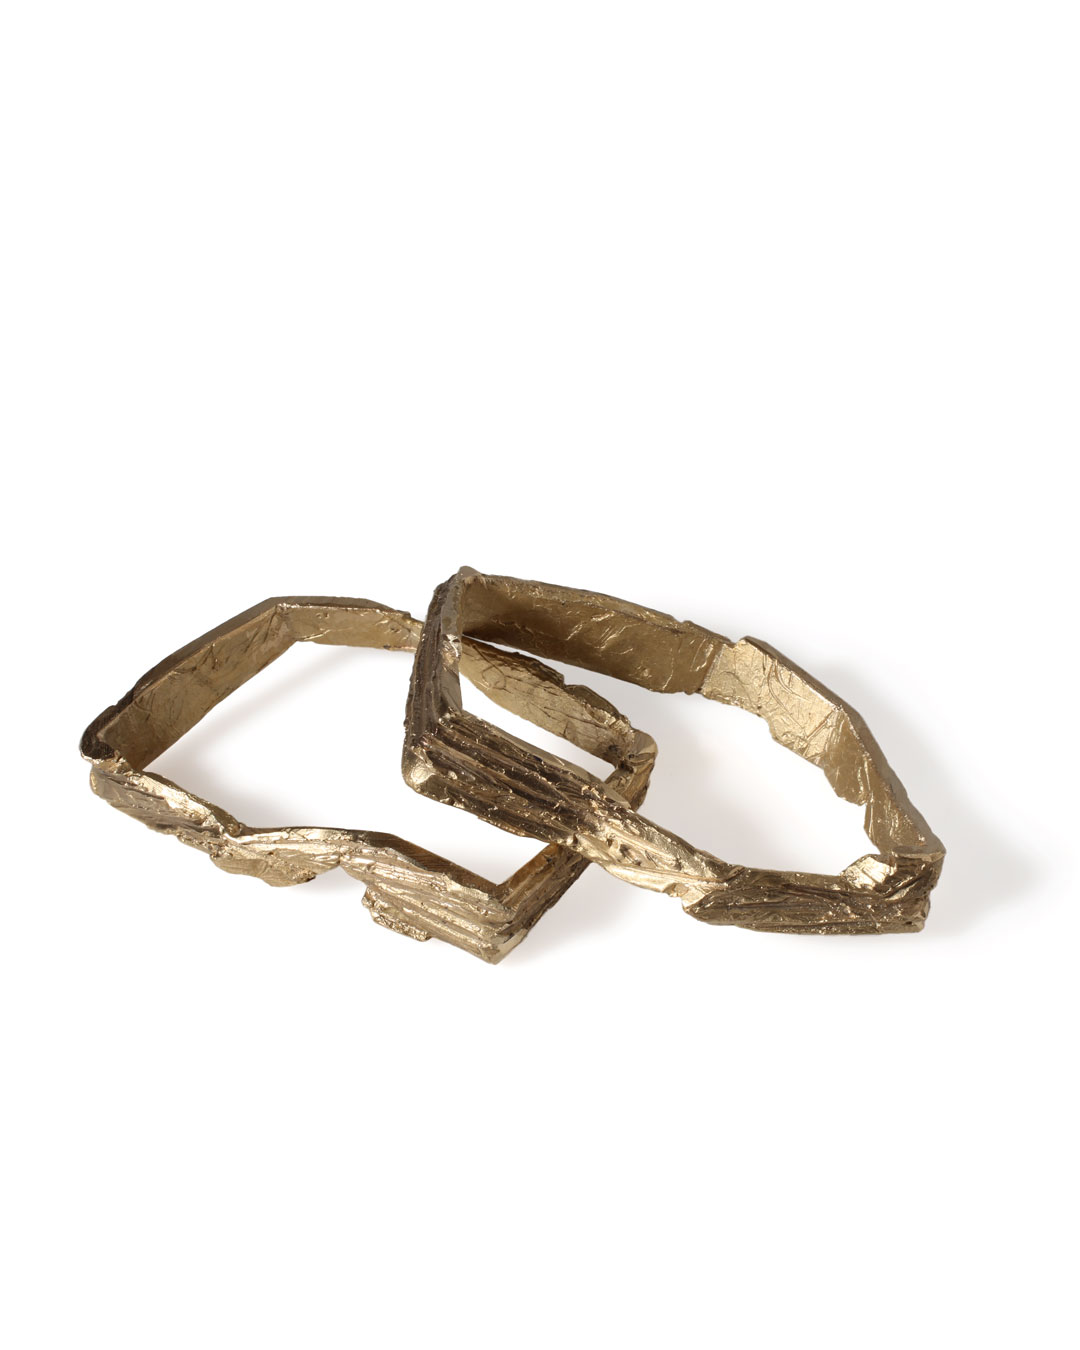 Juliane Brandes, untitled, 2013, bracelets; bronze, 90 x 70 x 20 mm, €680